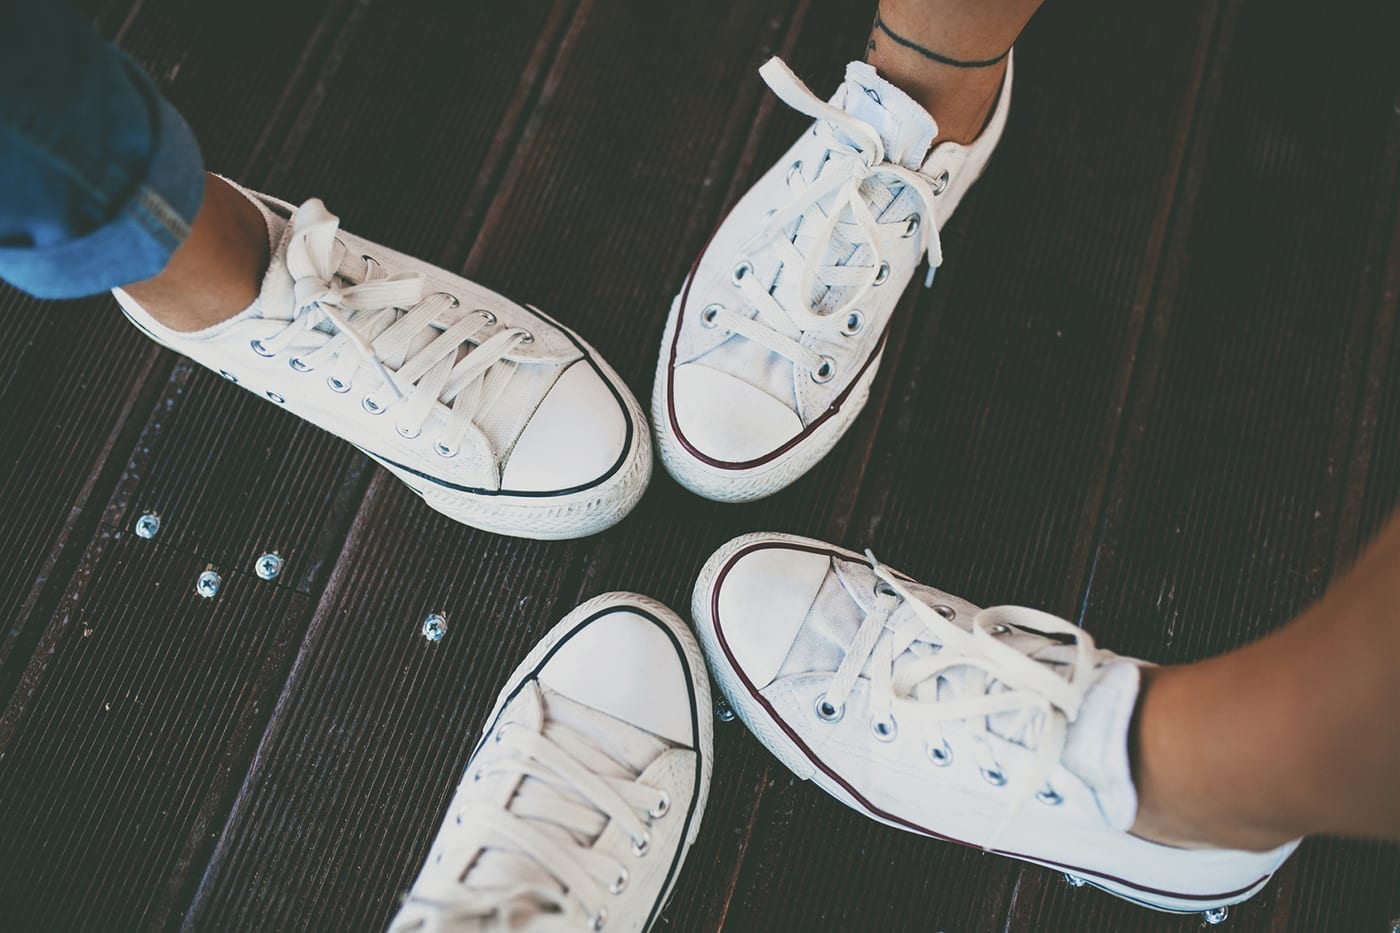 How to Make Your Shoes White Again